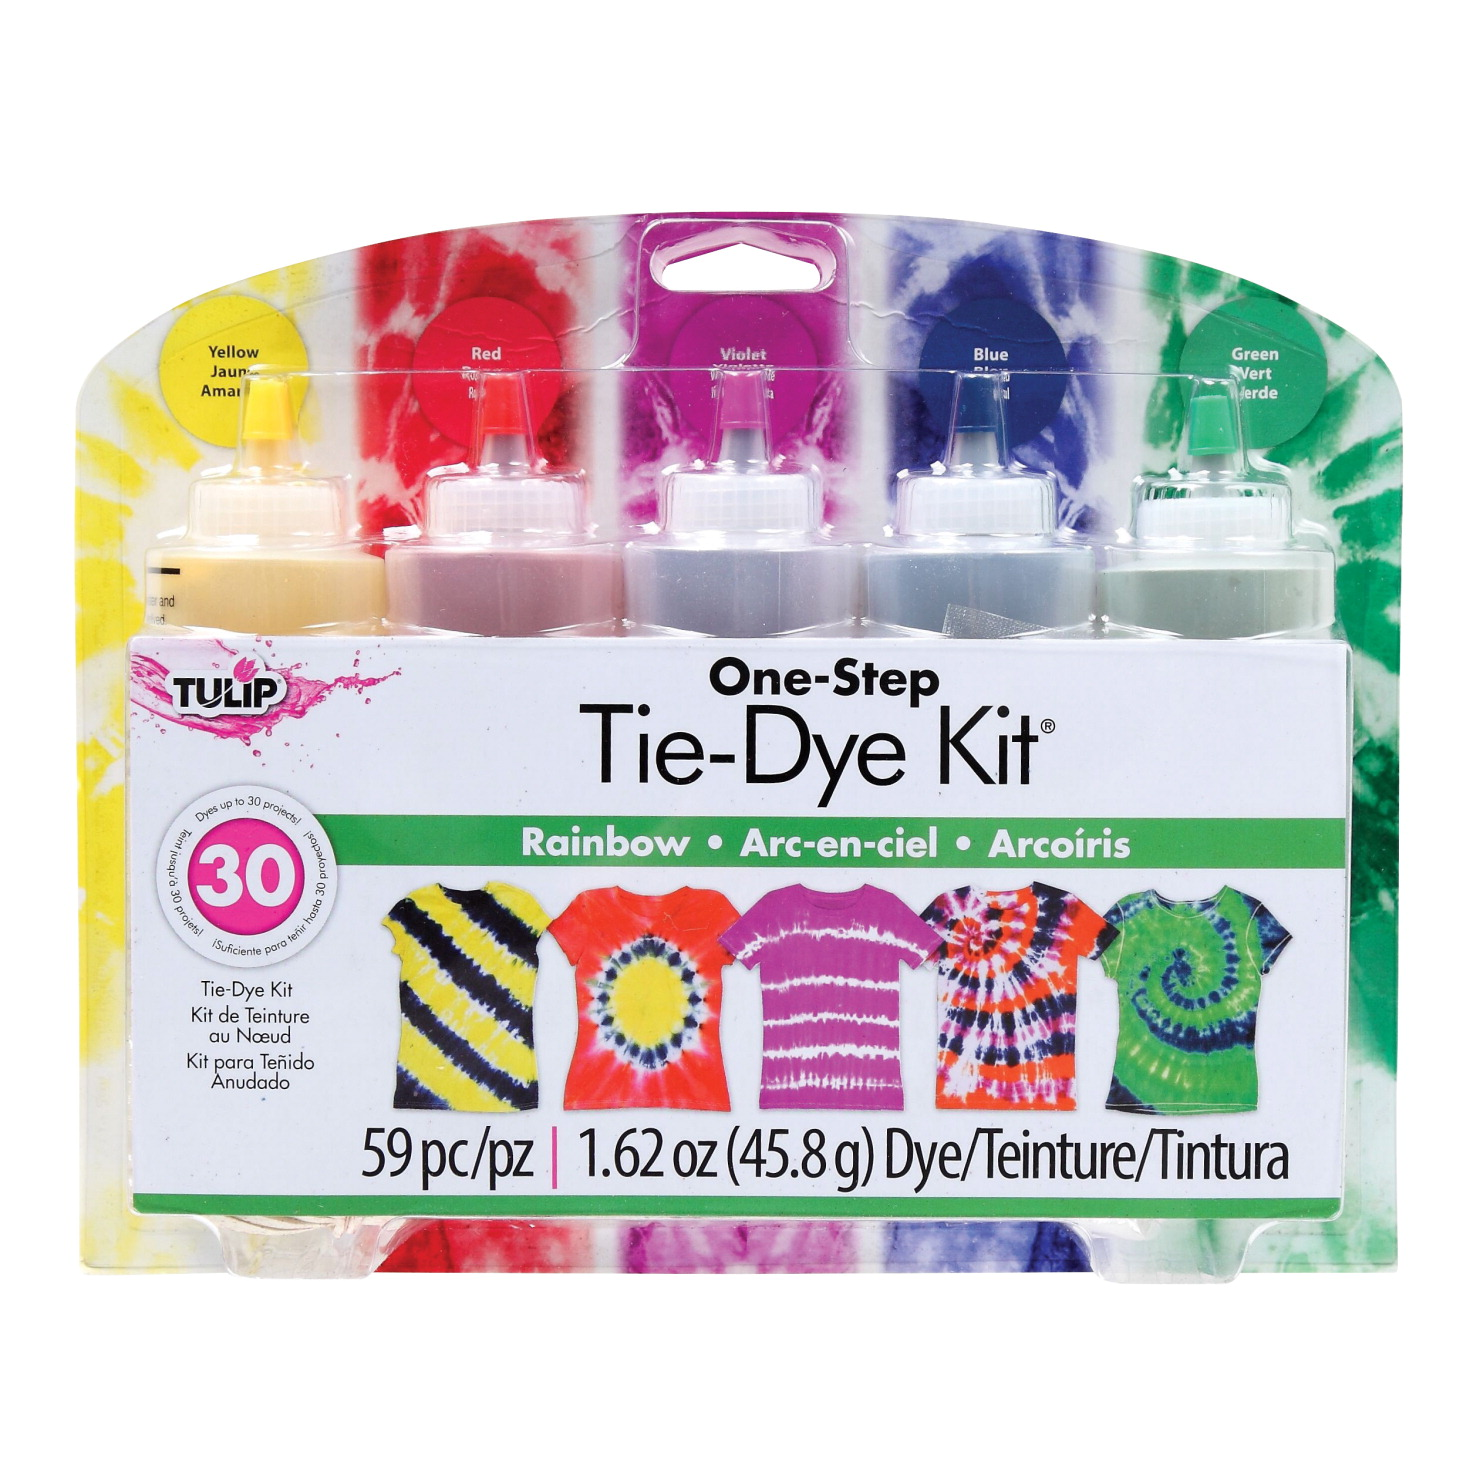 Tulip One-Step Tie-Dye Kit, 4 Ounce Bottles, Rainbow Colors, Set of 5